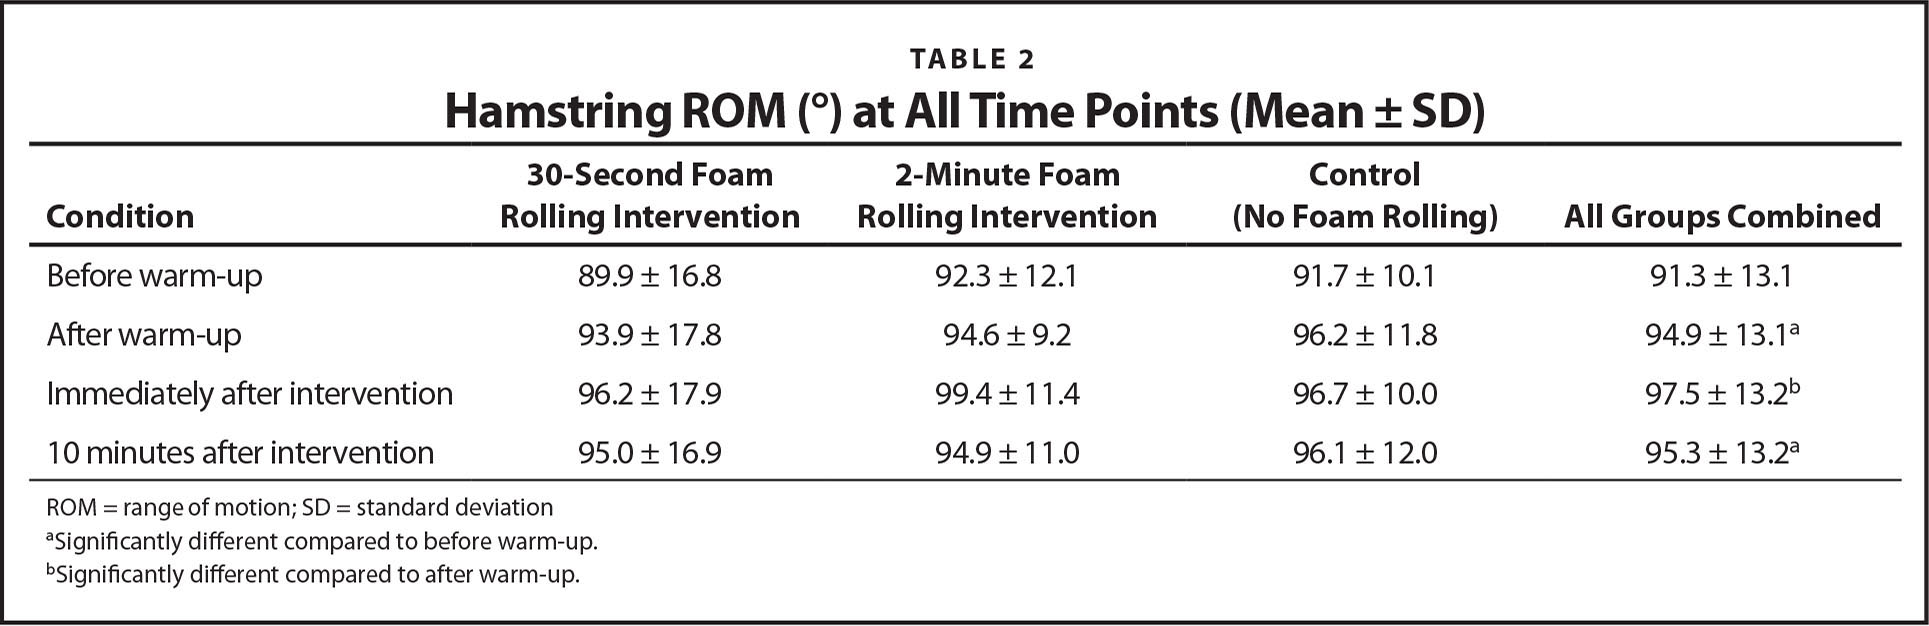 Hamstring ROM (°) at All Time Points (Mean ± SD)